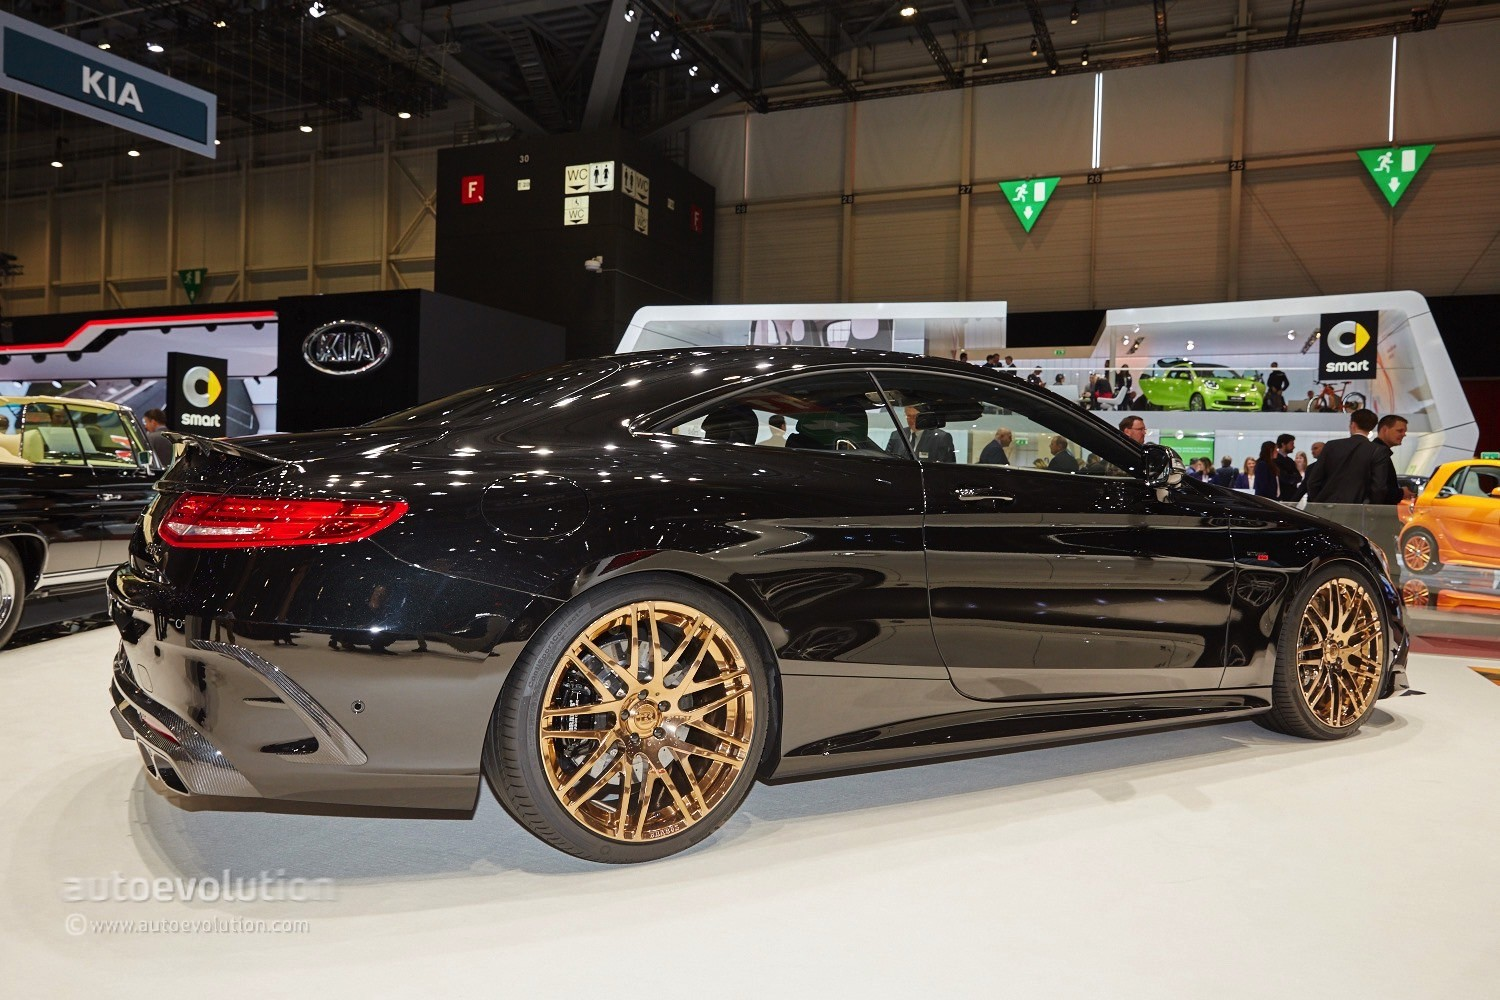 Brabus rocket 850 cls investments online games to earn money without investment